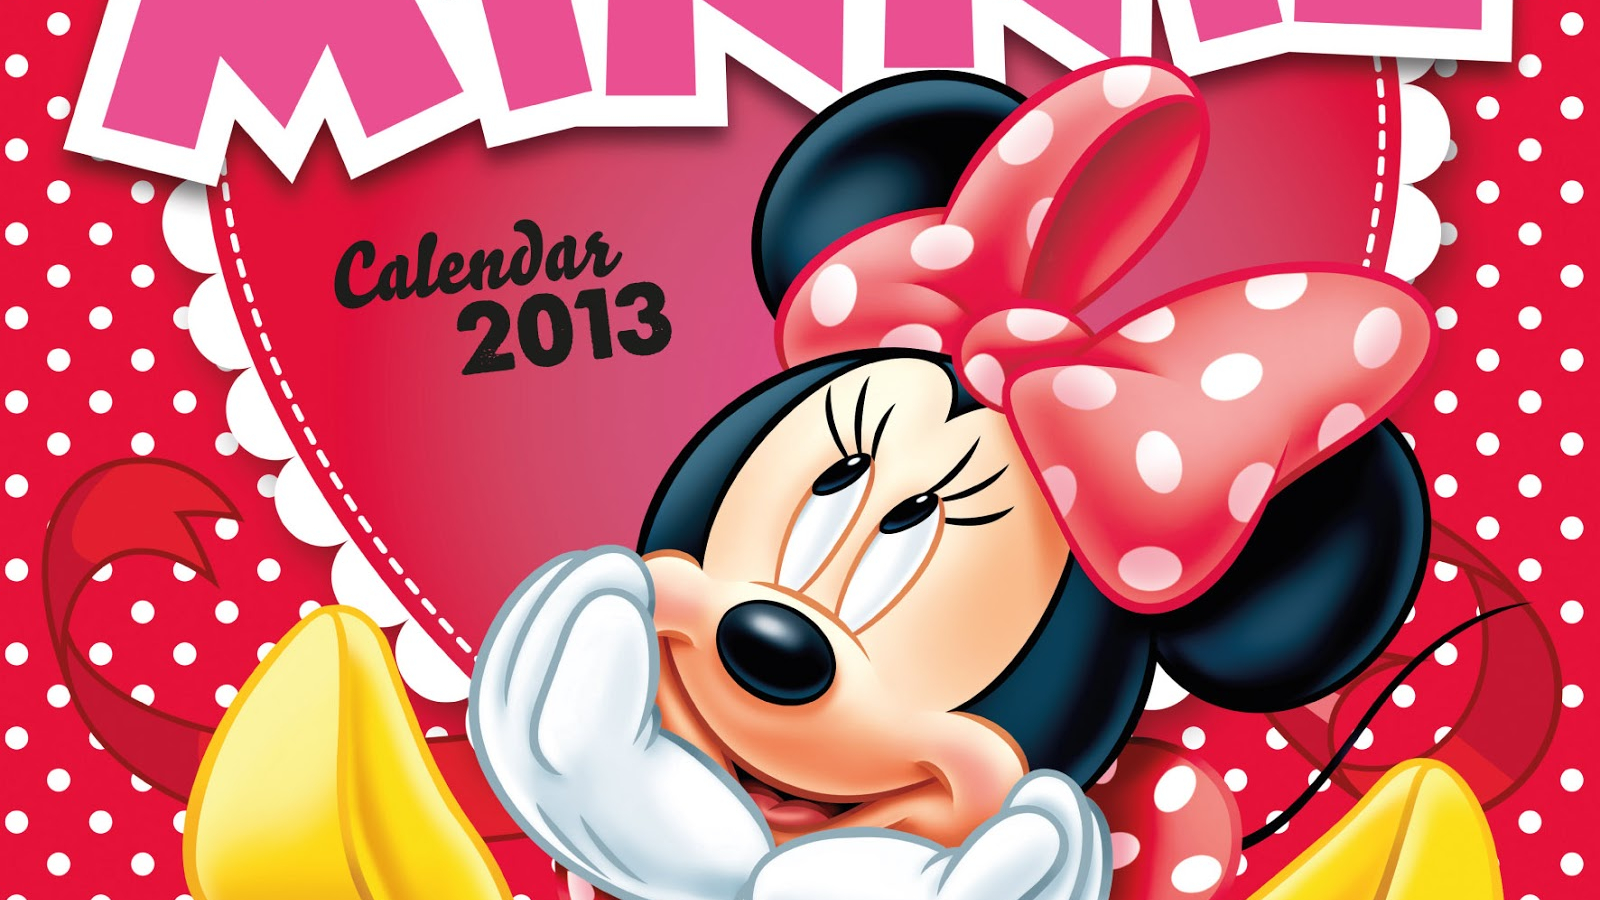 Minnie Mouse Wallpapers 500 Collection